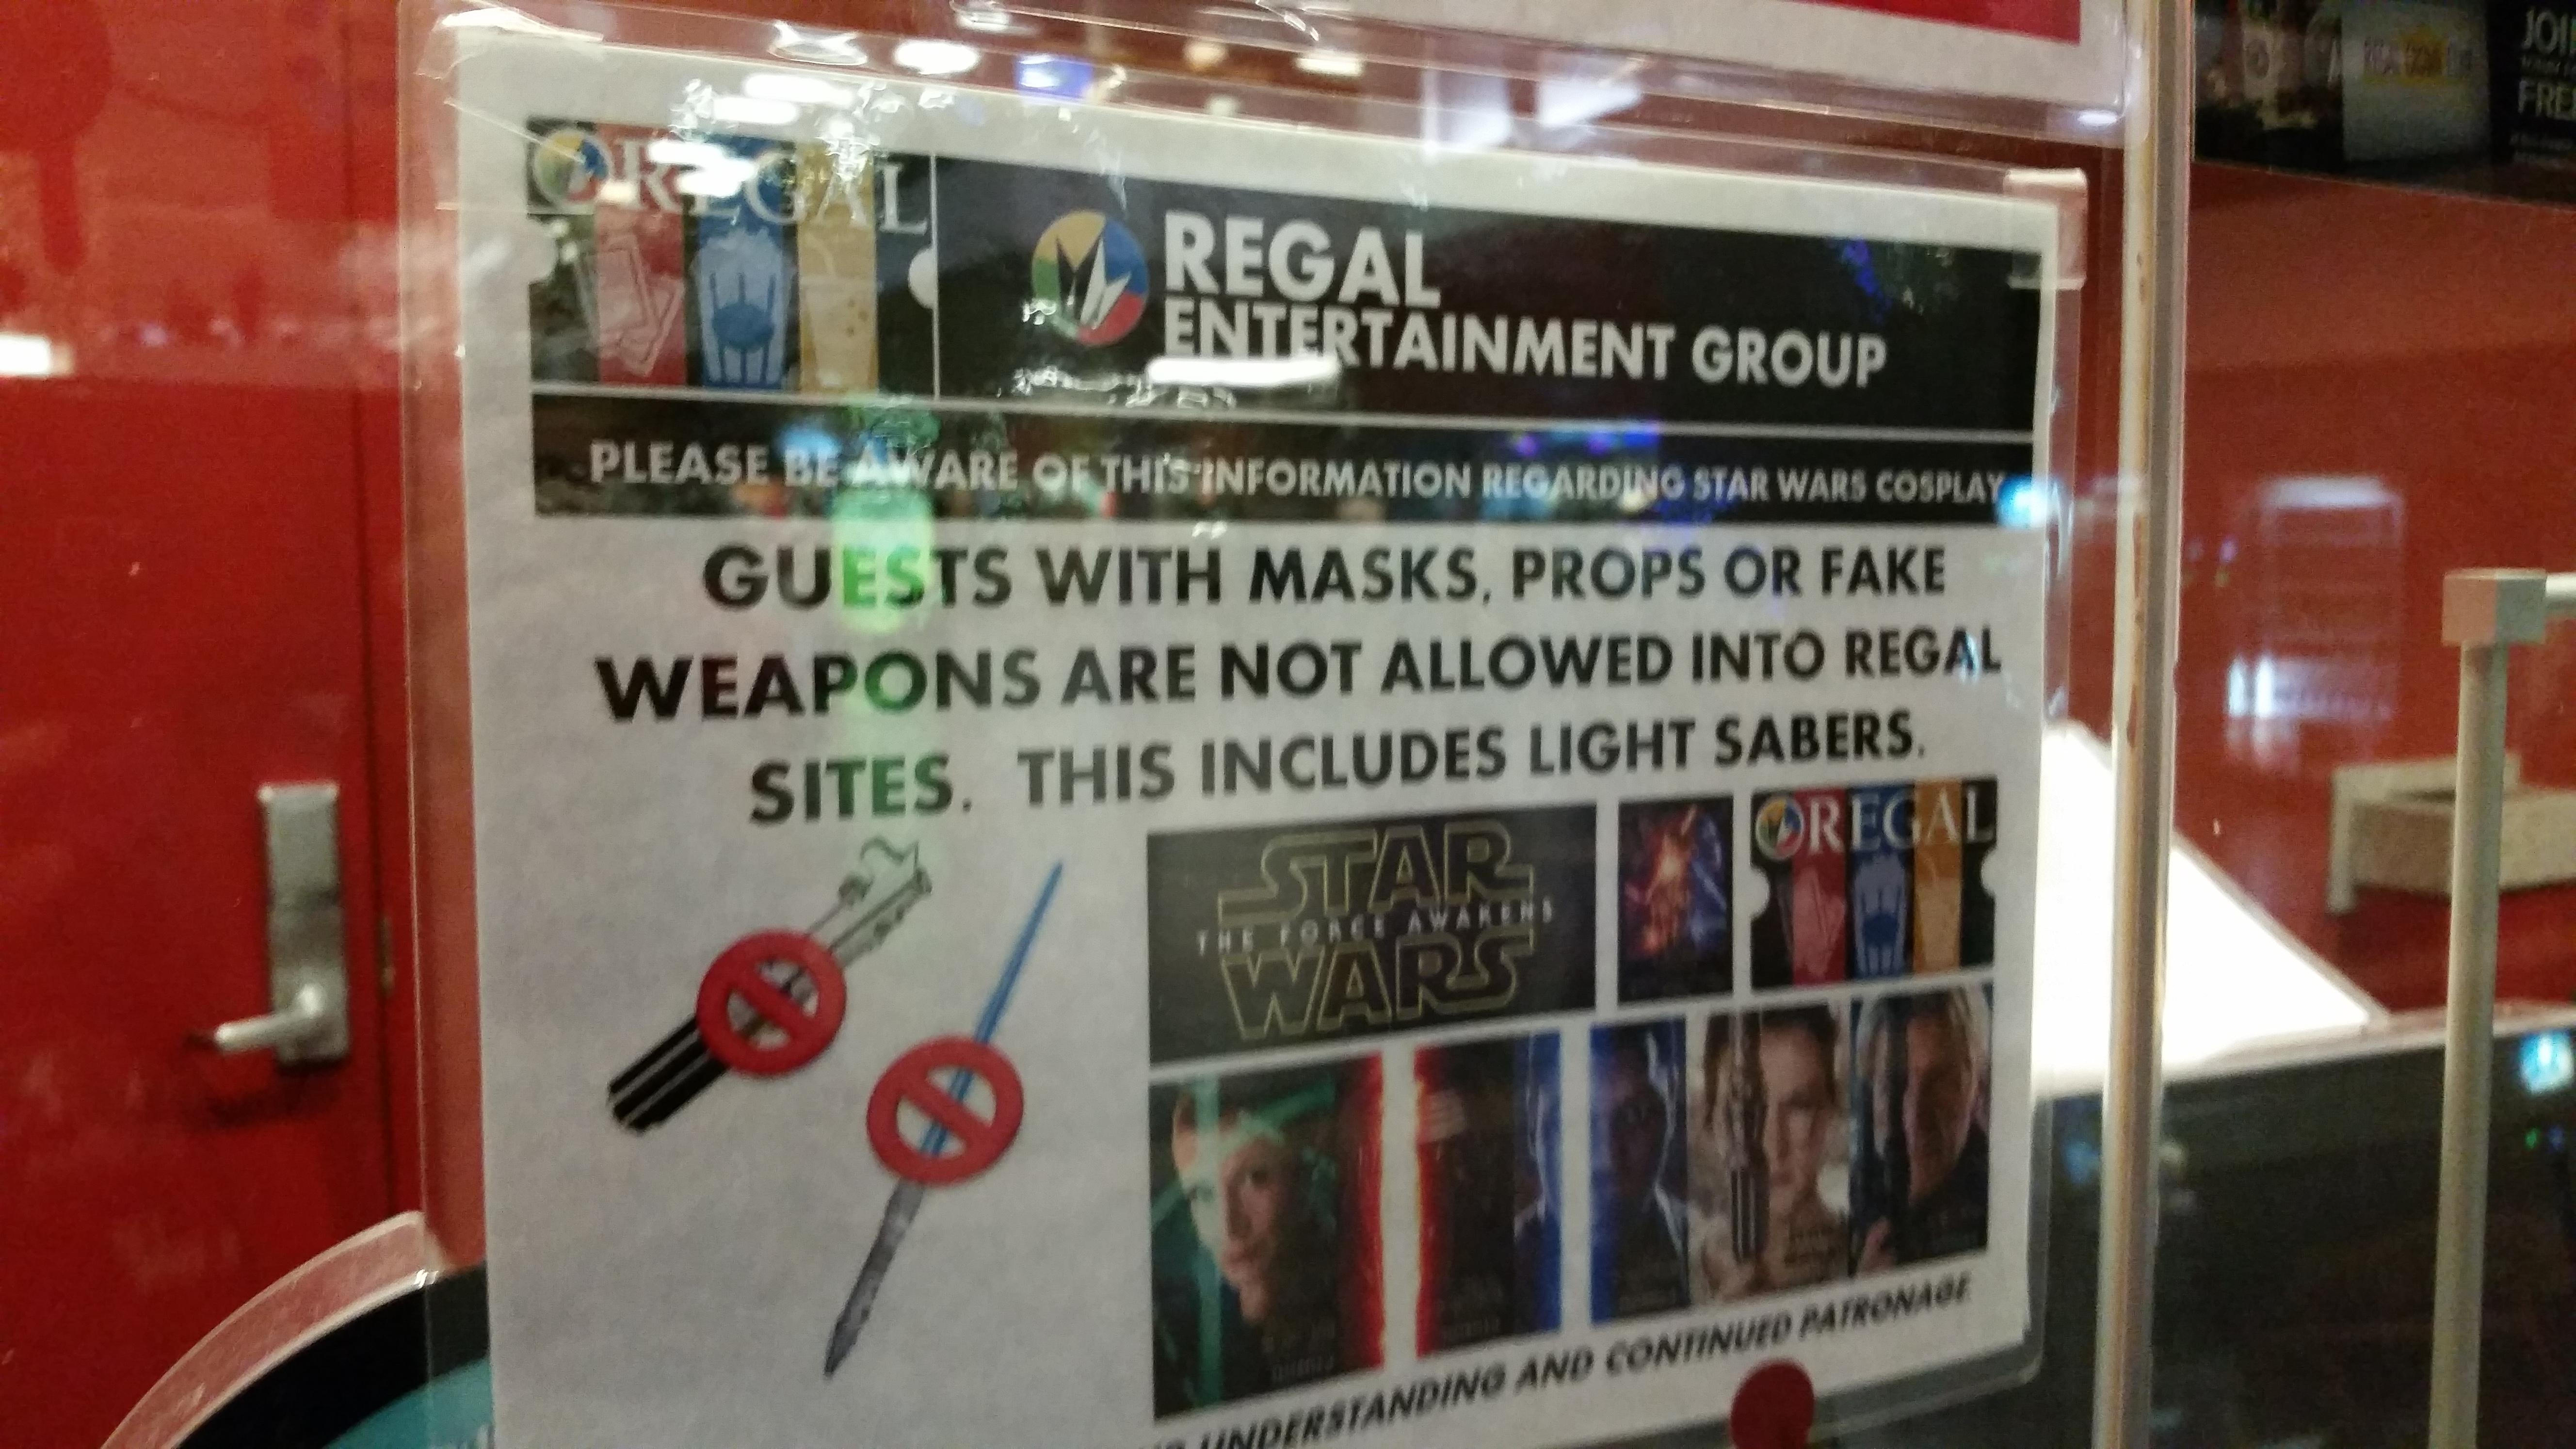 Theater companies ask fans to leave masks, sabers and other items at home.